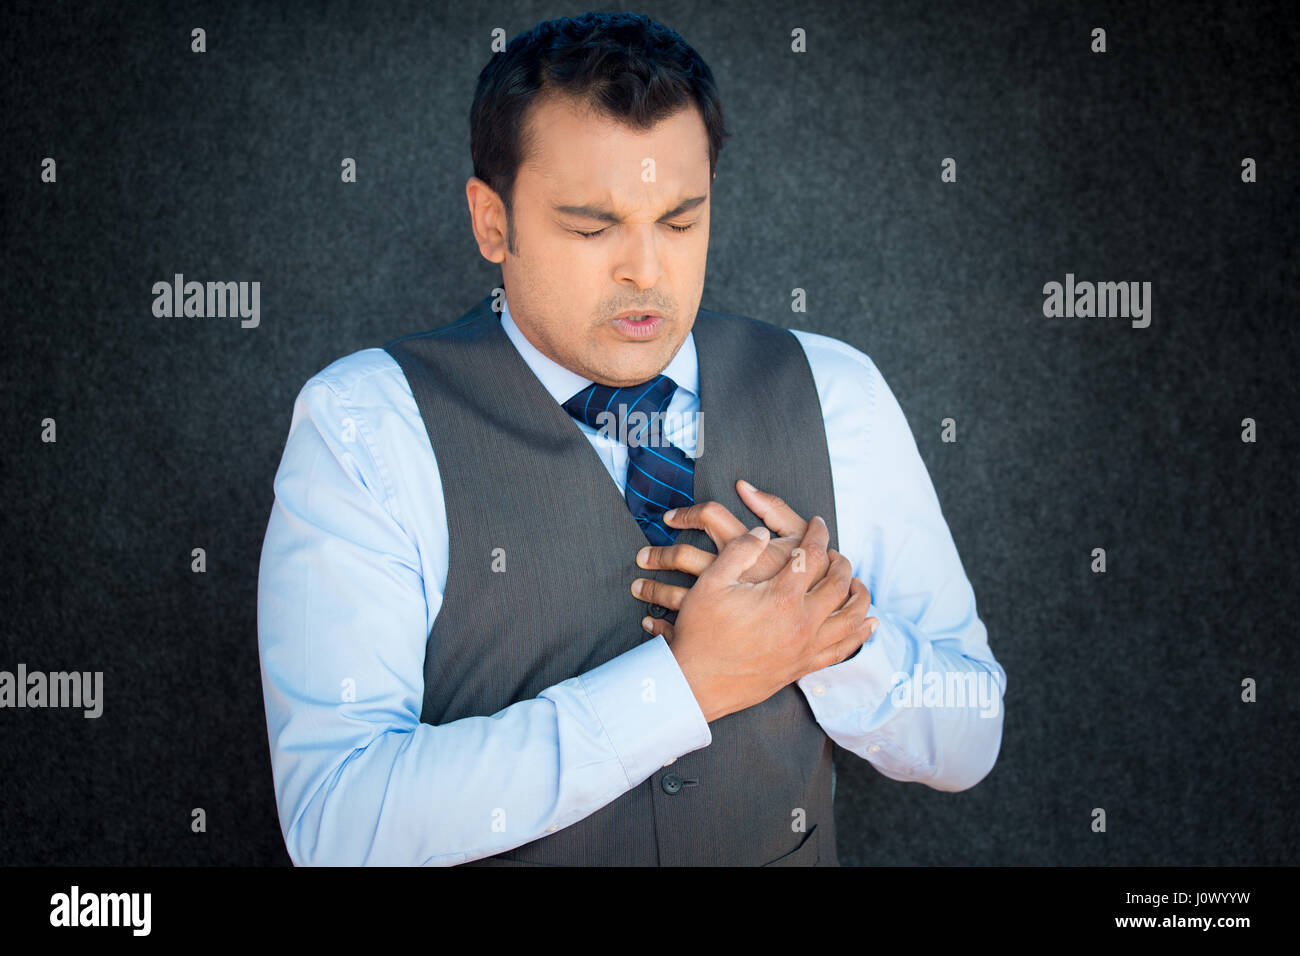 Closeup portrait, young gentleman in vest and blue tie, clutching chest tightly in severe substernal pain, grimace - Stock Image